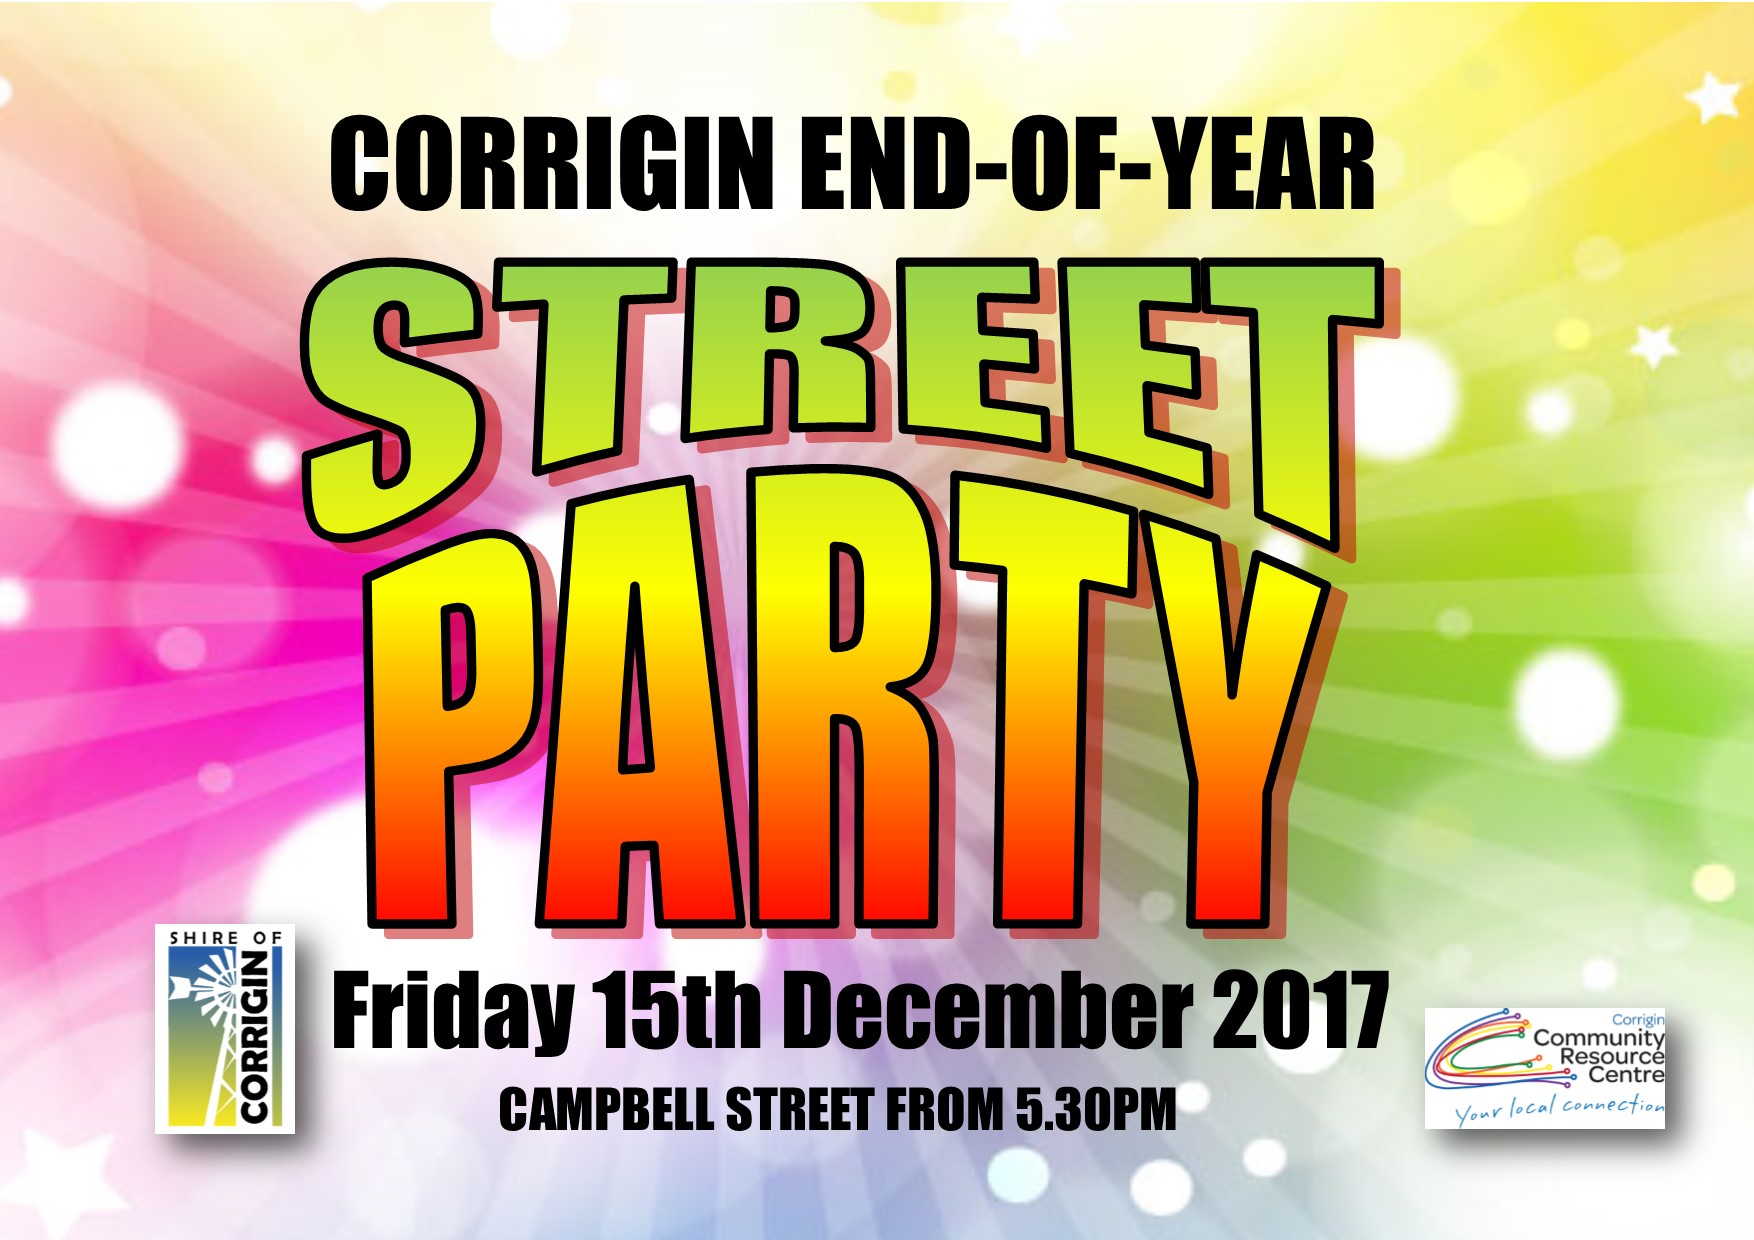 CORRIGIN END OF YEAR STREET PARTY 2017